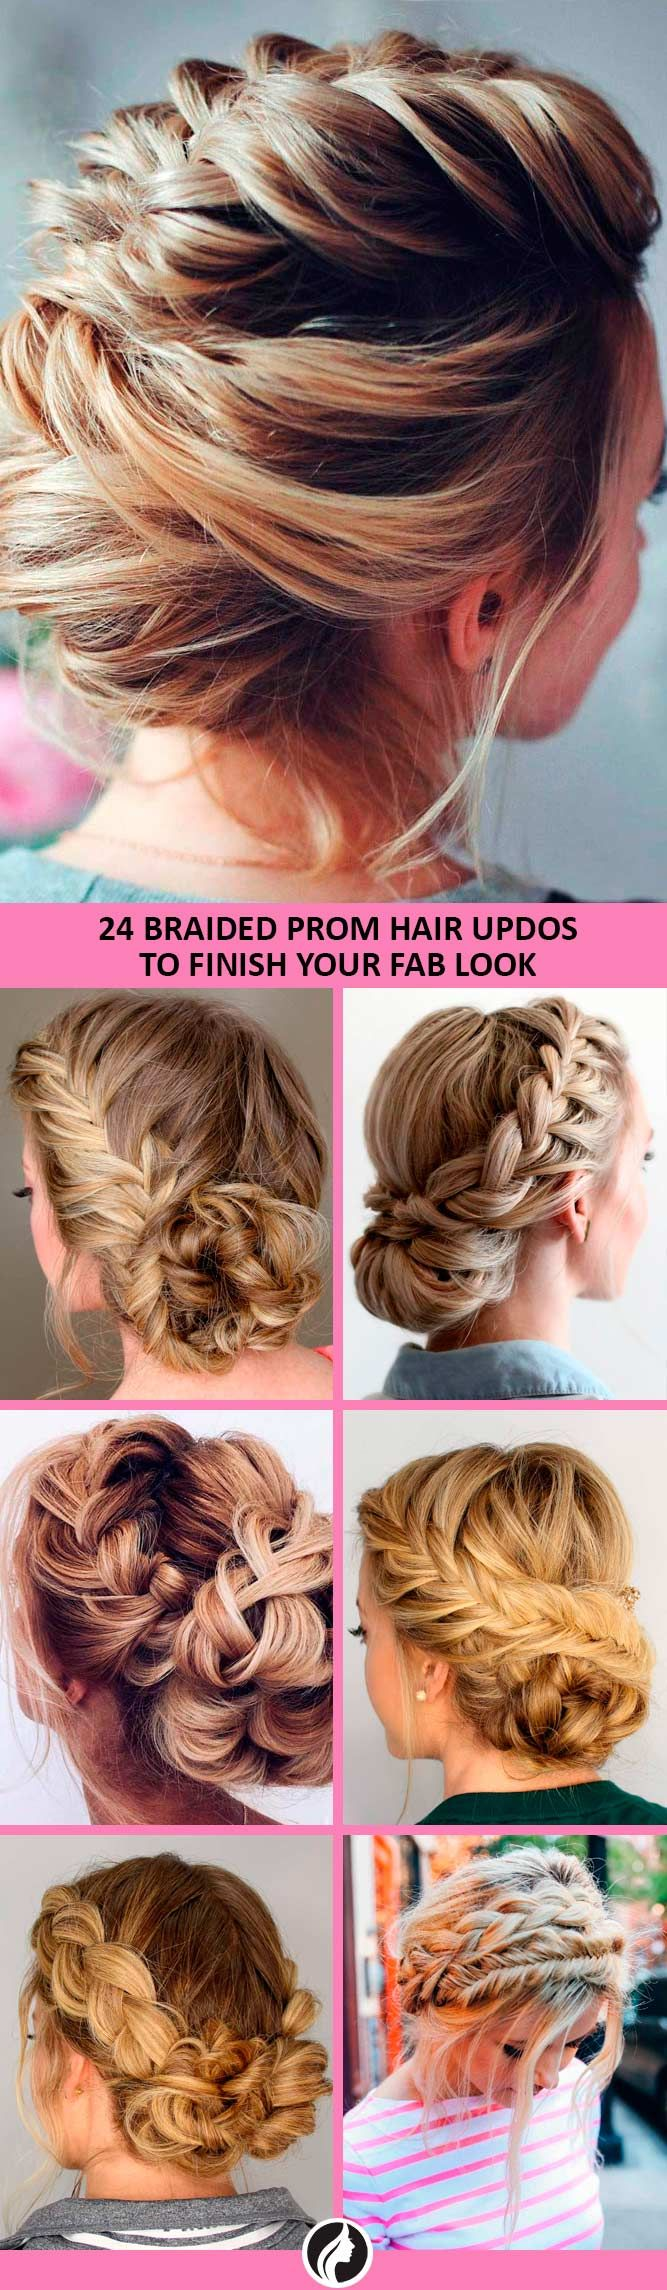 Updo Hairstyles for Homecoming: Faux Hawk Updos Tutorial advise